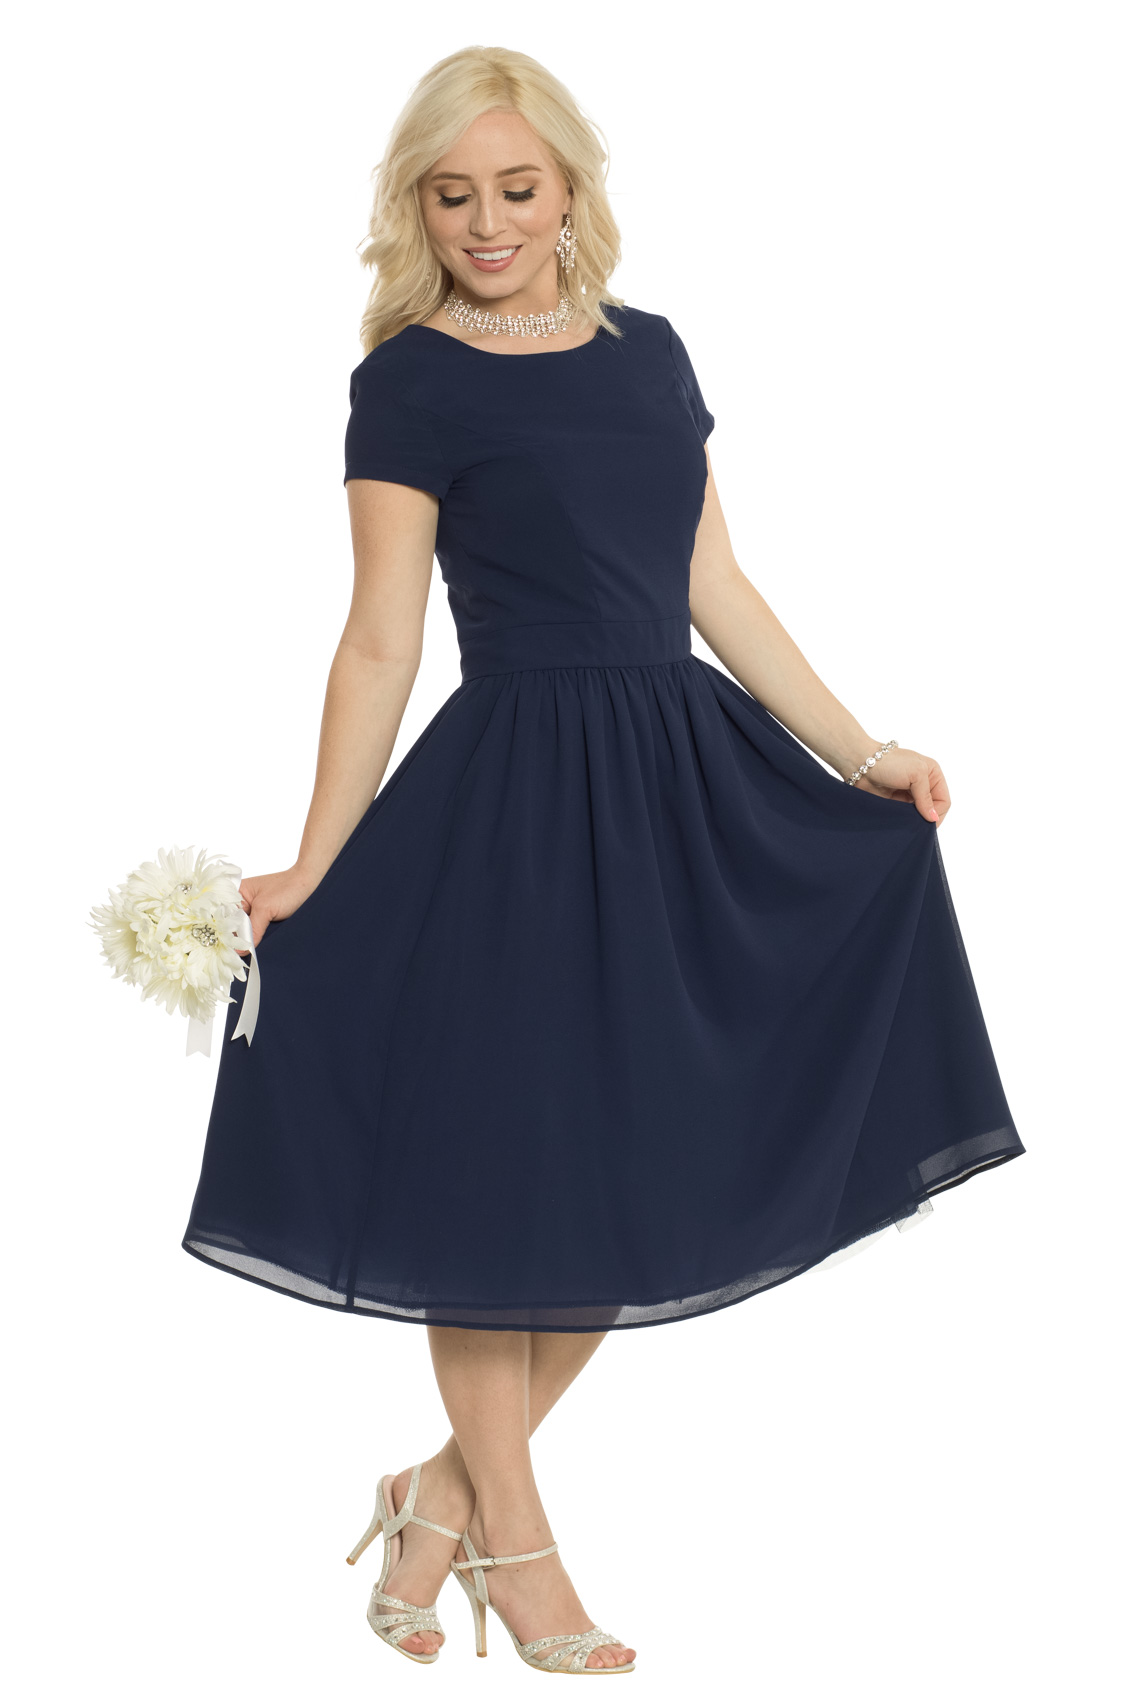 Jenclothings Lucy Semi Formal Modest Dress In Navy Blue